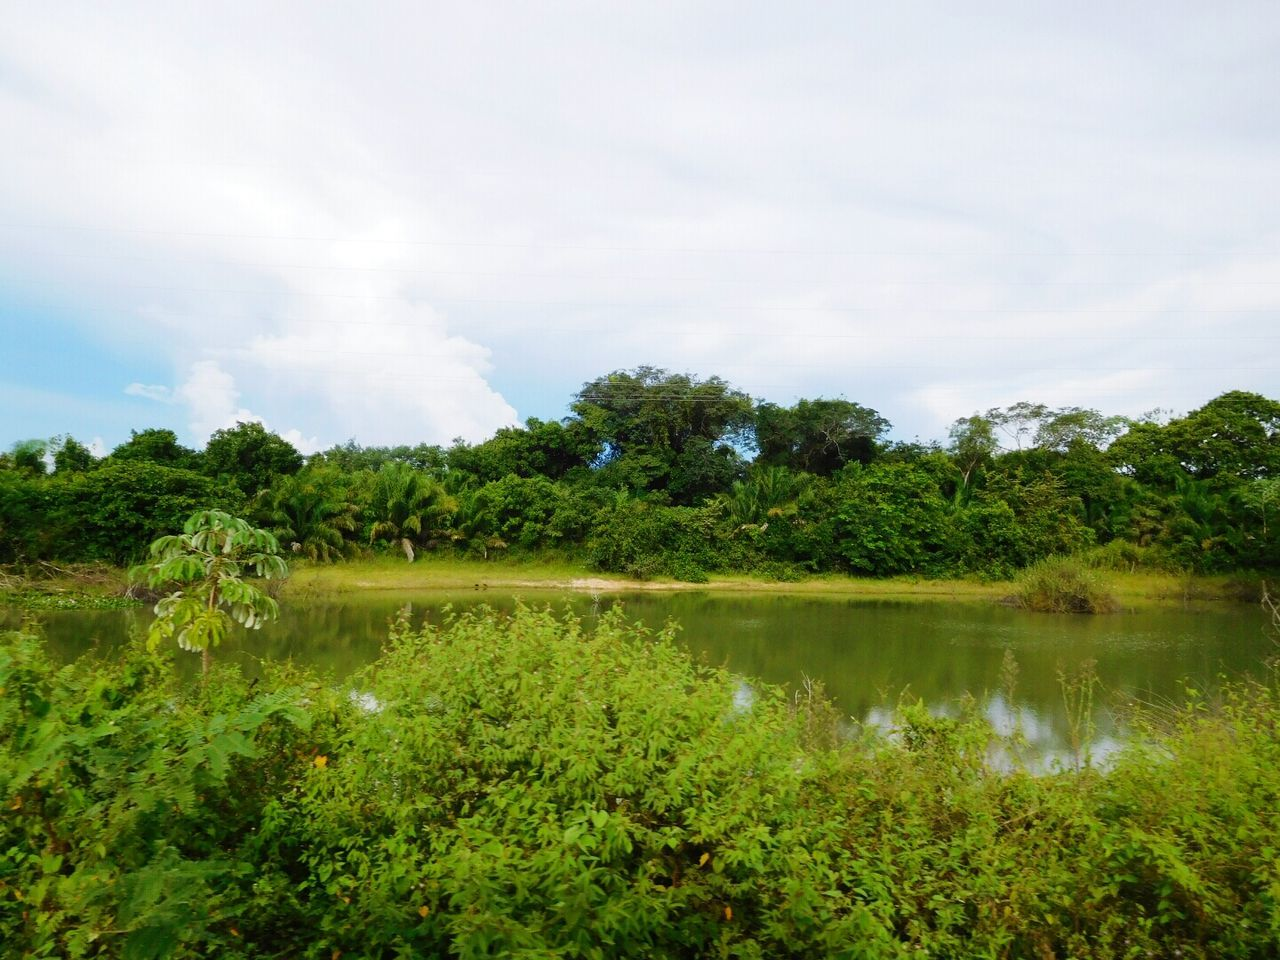 nature, plant, vegetation, tree, water, sky, outdoors, no people, growth, beauty in nature, tranquility, landscape, scenics, forest, grass, day